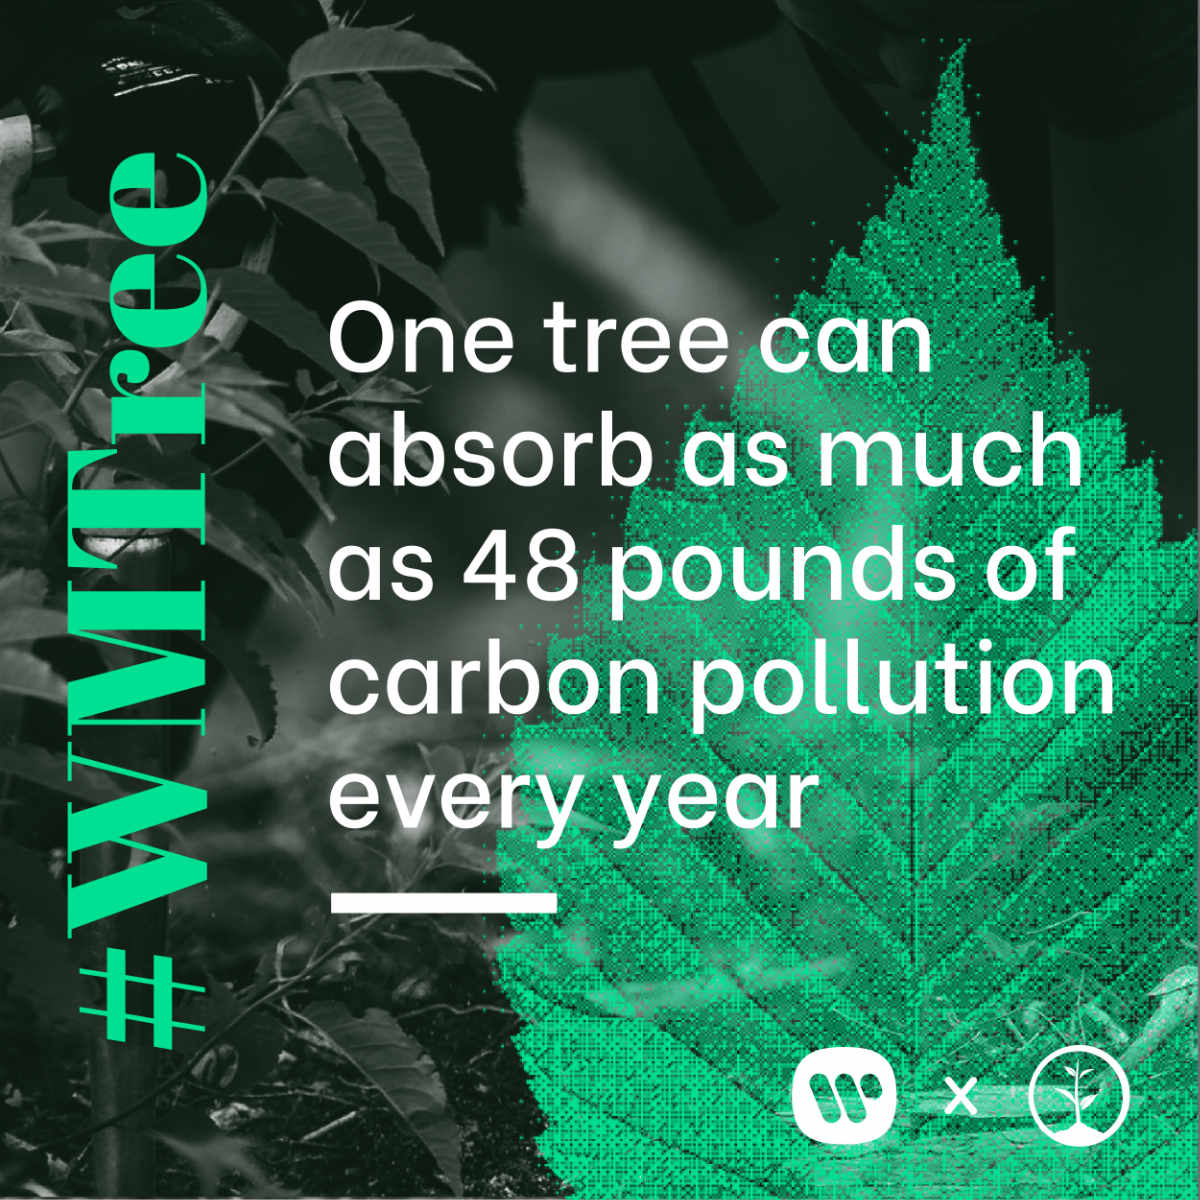 One tree can absorb as much as 48 pounds of carbon pollution every year